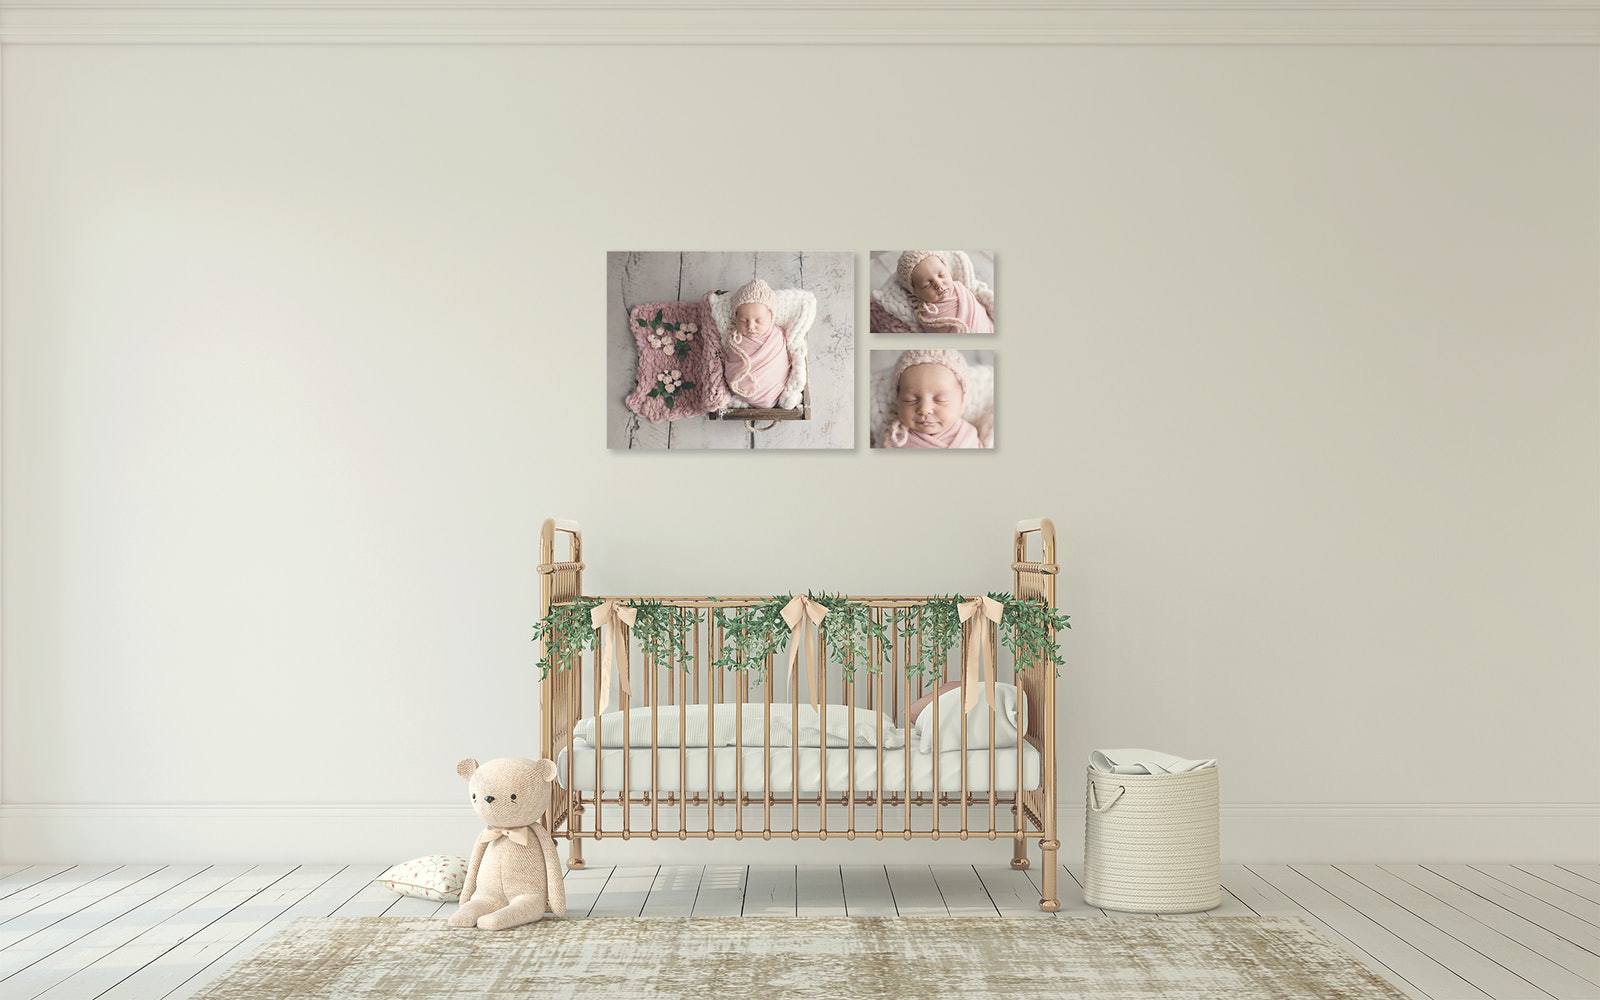 newborn room with canvas on walls - Beautiful wall art canvas with 75 year warranty proudly displayed in newborn baby's bedroom